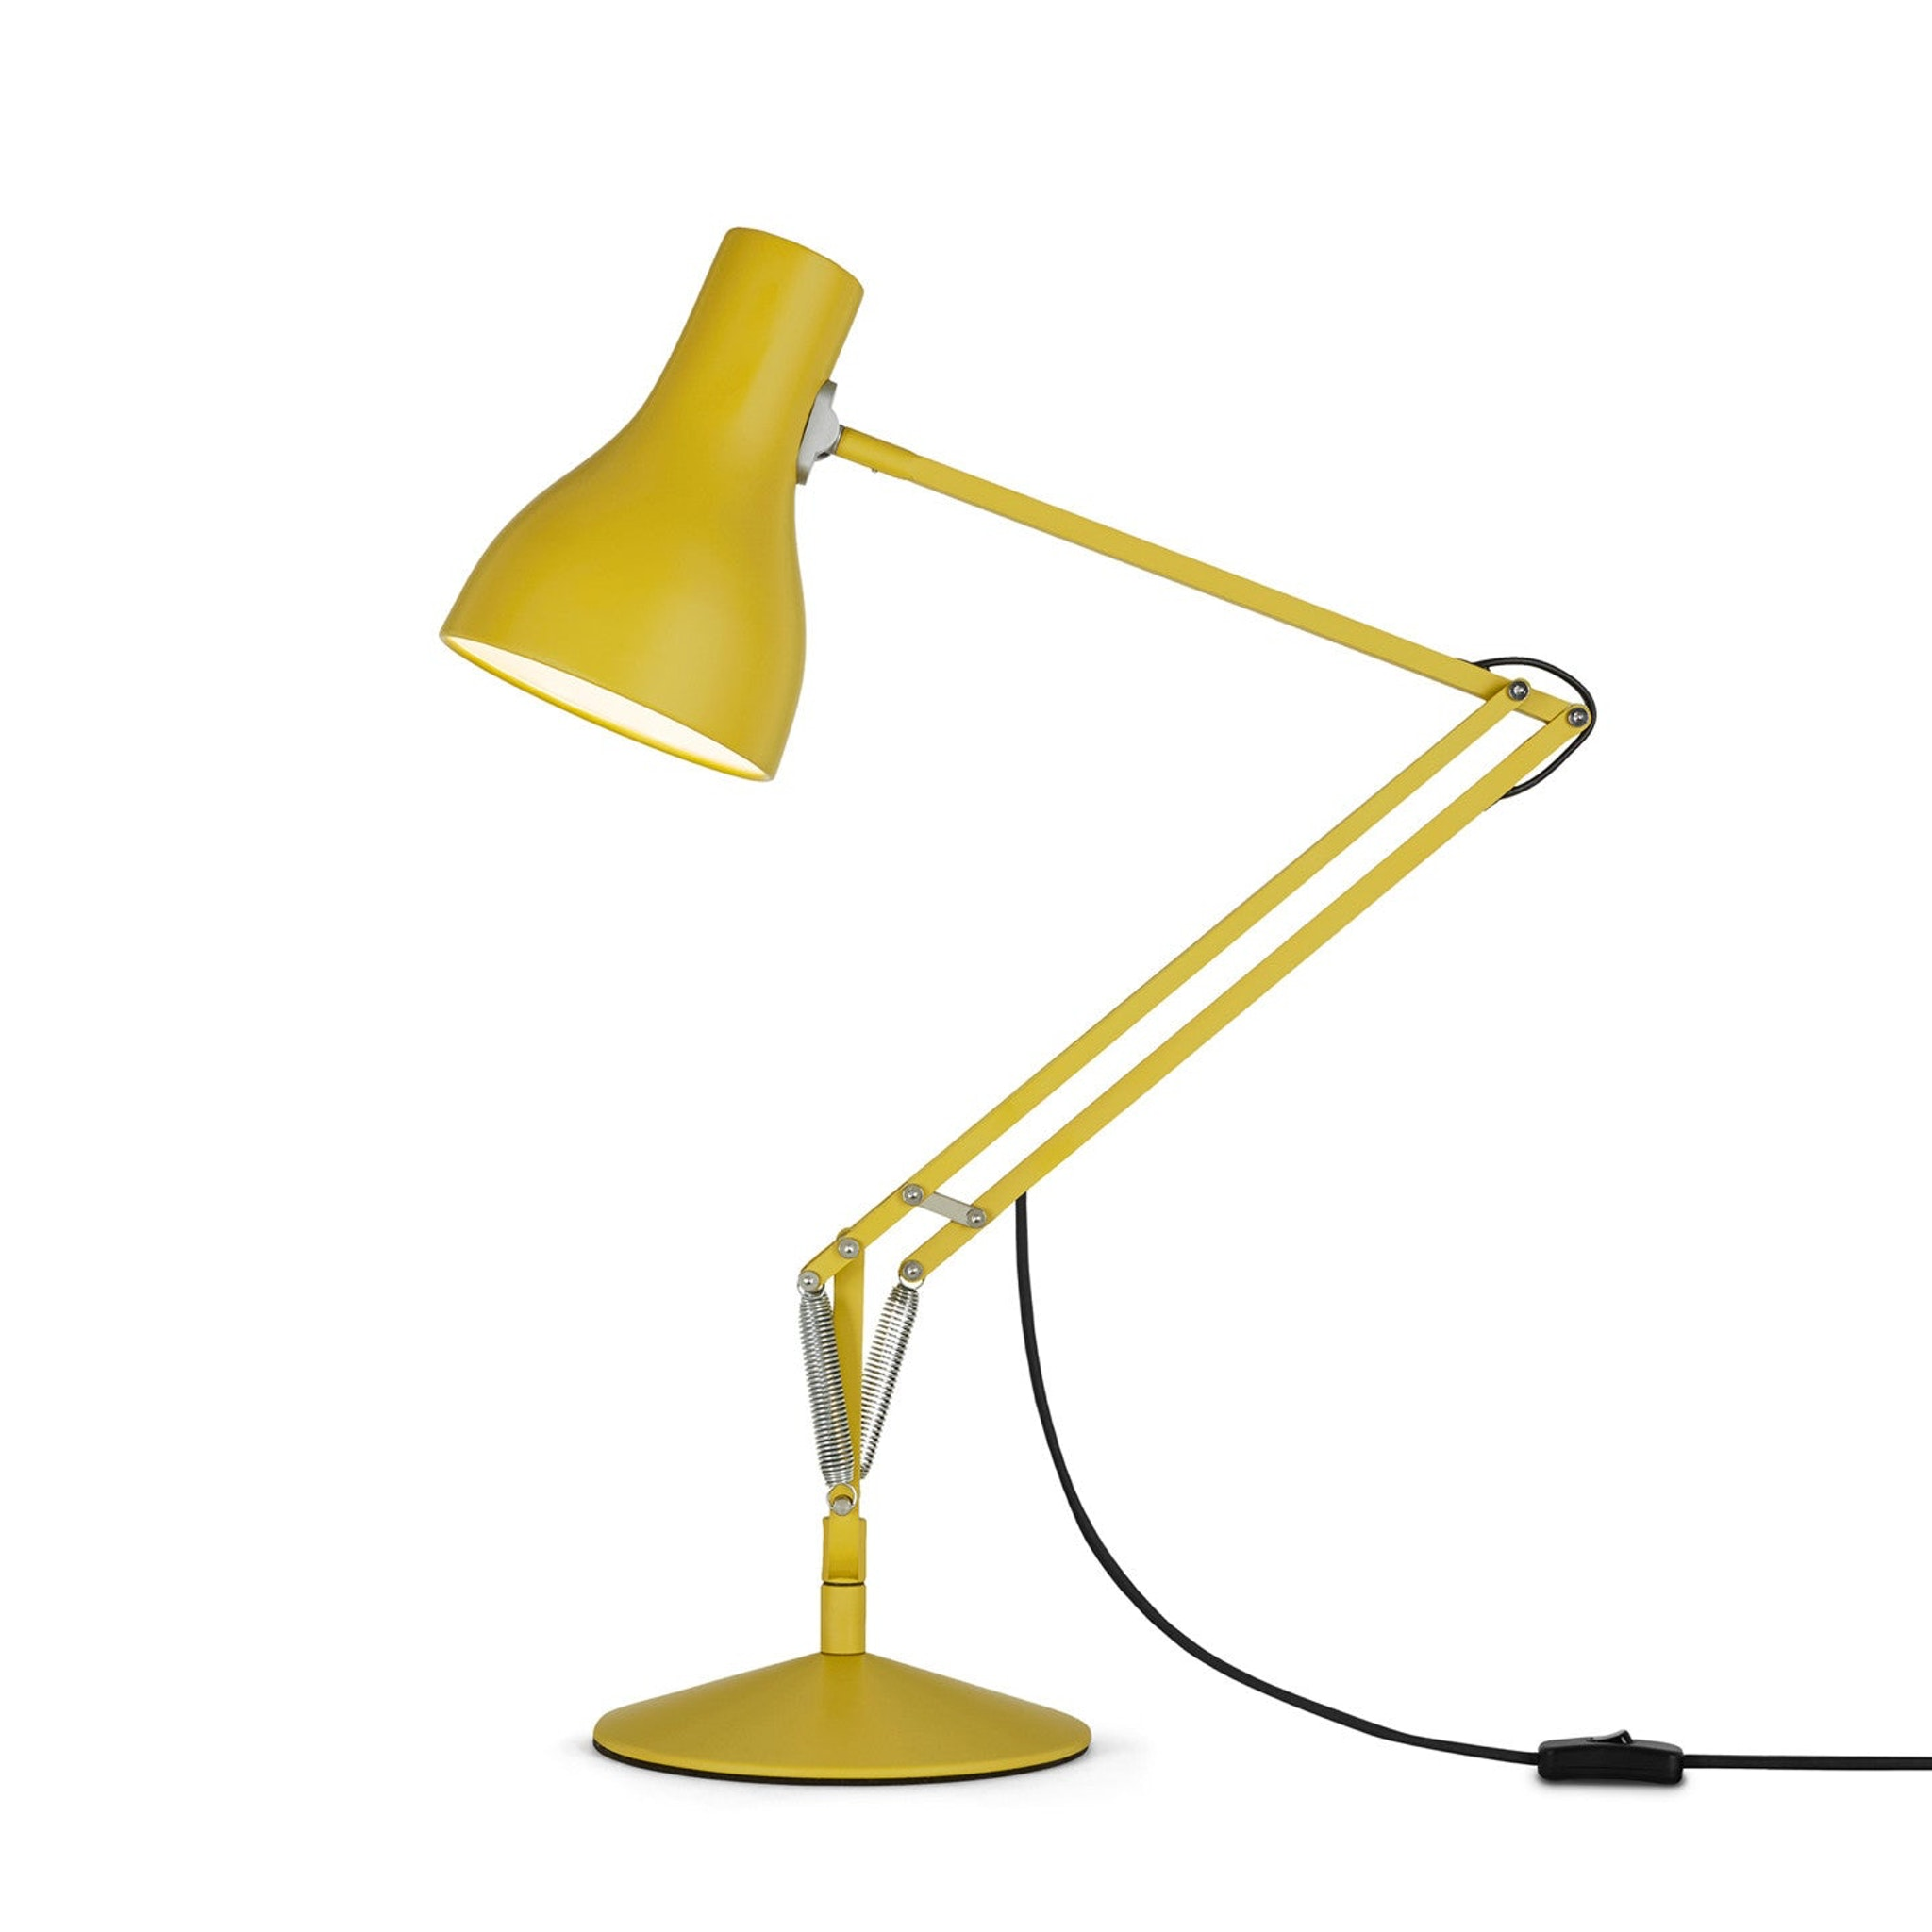 Type 75 Desk Lamp Yellow Ochre Edition by Kenneth Grange